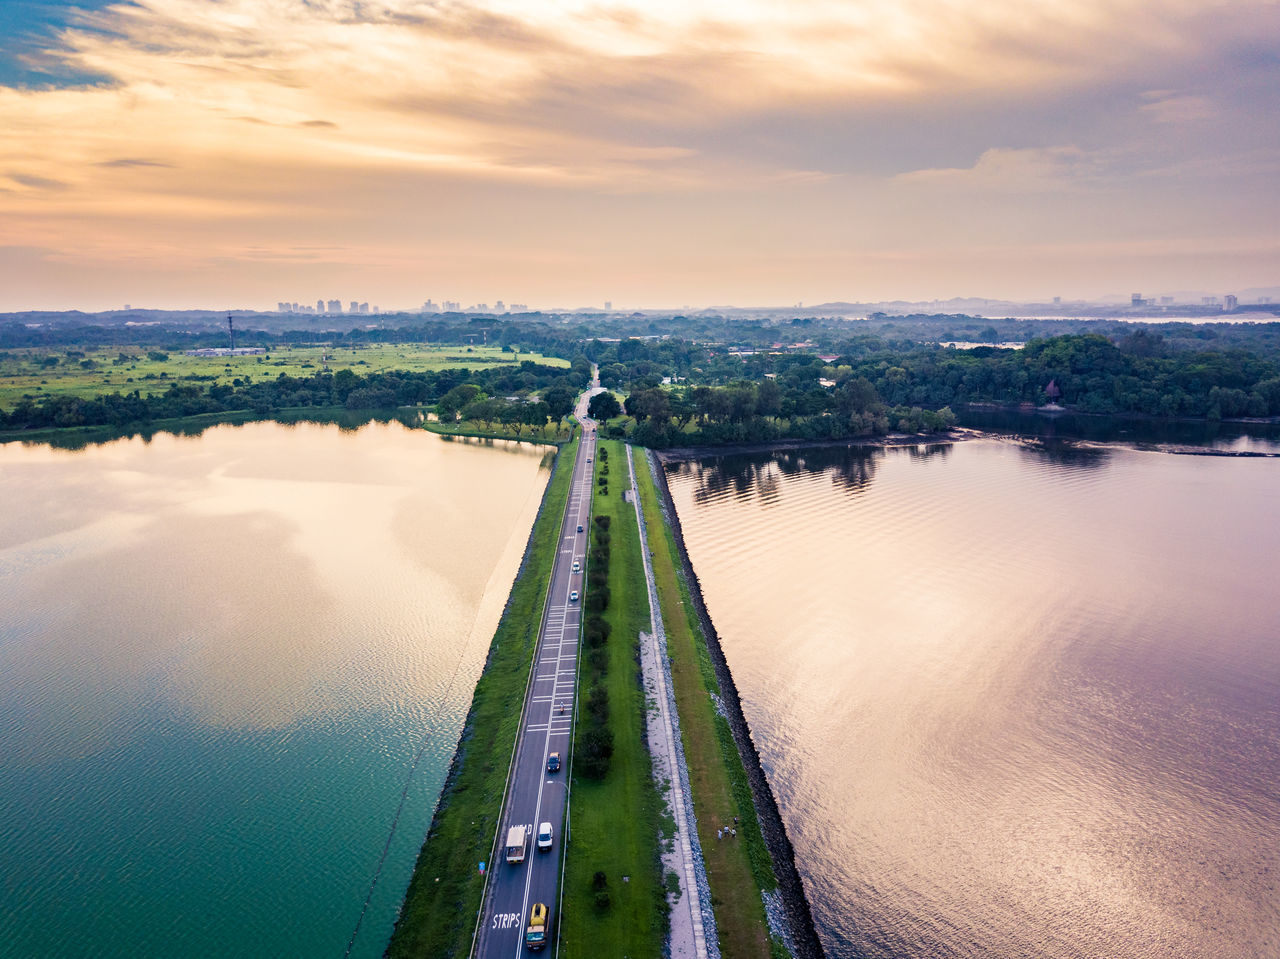 Architecture Beauty In Nature Bridge - Man Made Structure Building Exterior Built Structure City Cloud - Sky Dam Day Drone  Dronephotography High Angle View Kranji  Nature No People Outdoors River Scenics Singapore Sky Sunset Travel Destinations Tree Water